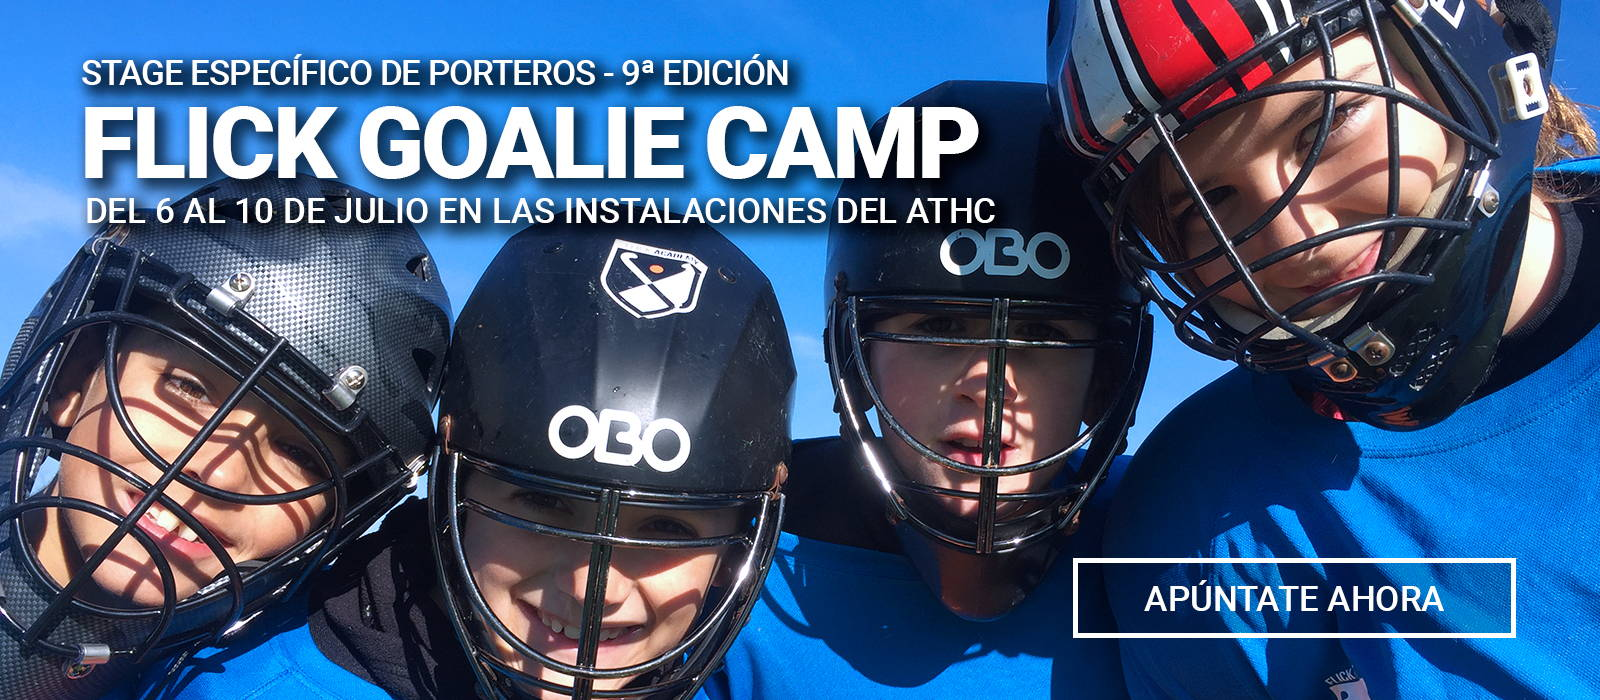 Apúntate al Flick Goalie Camp